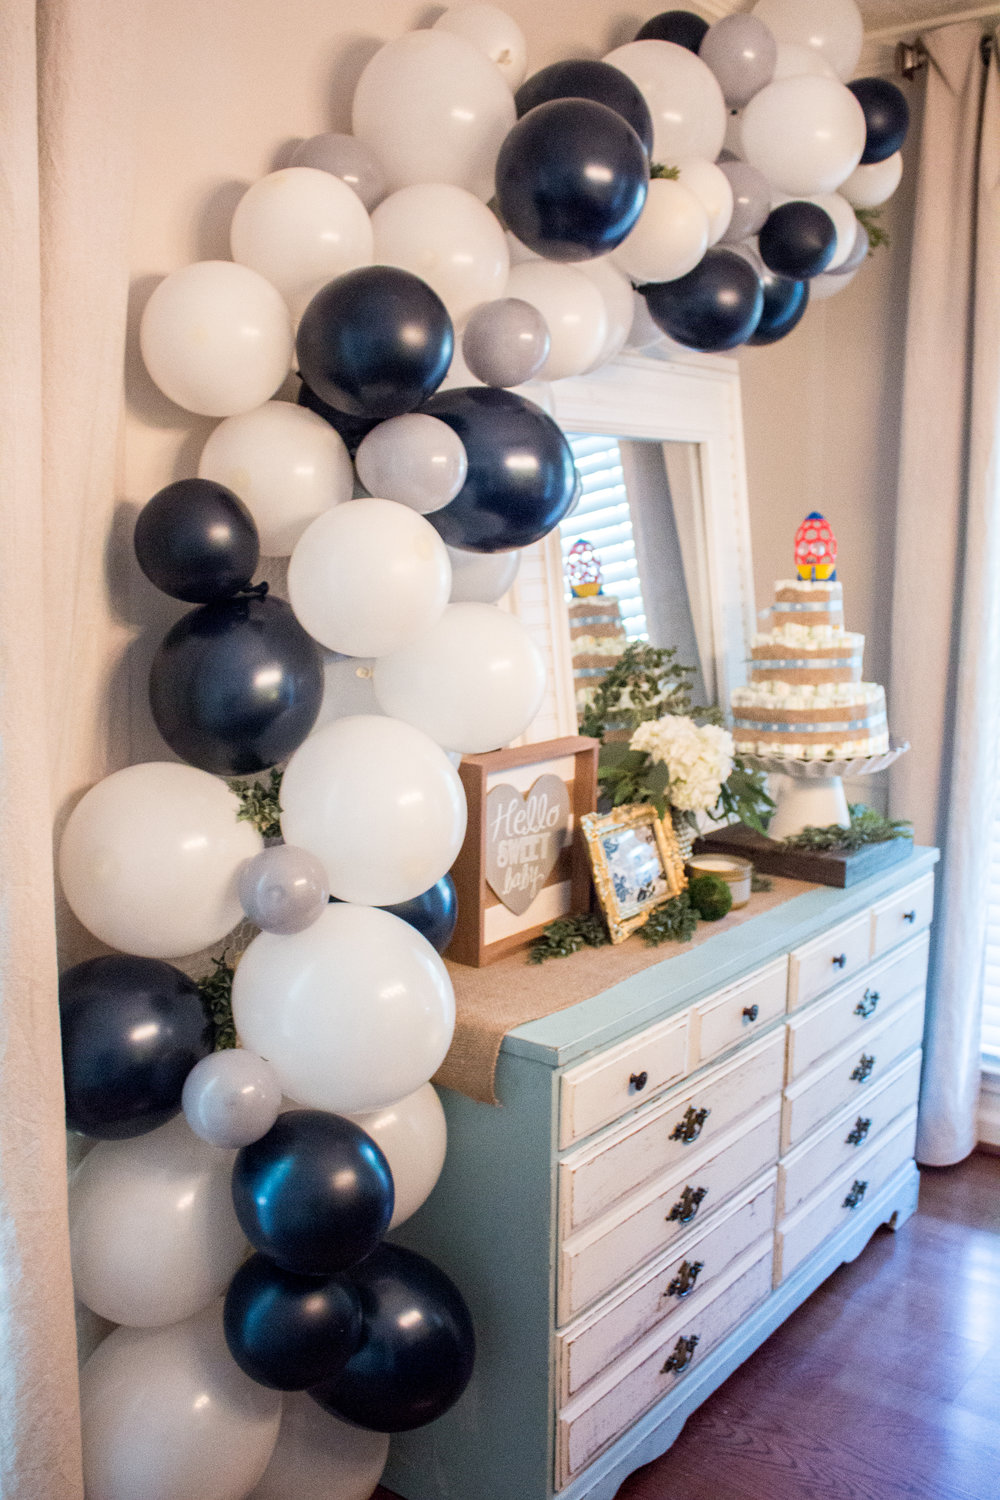 balloon-garland-backdrop